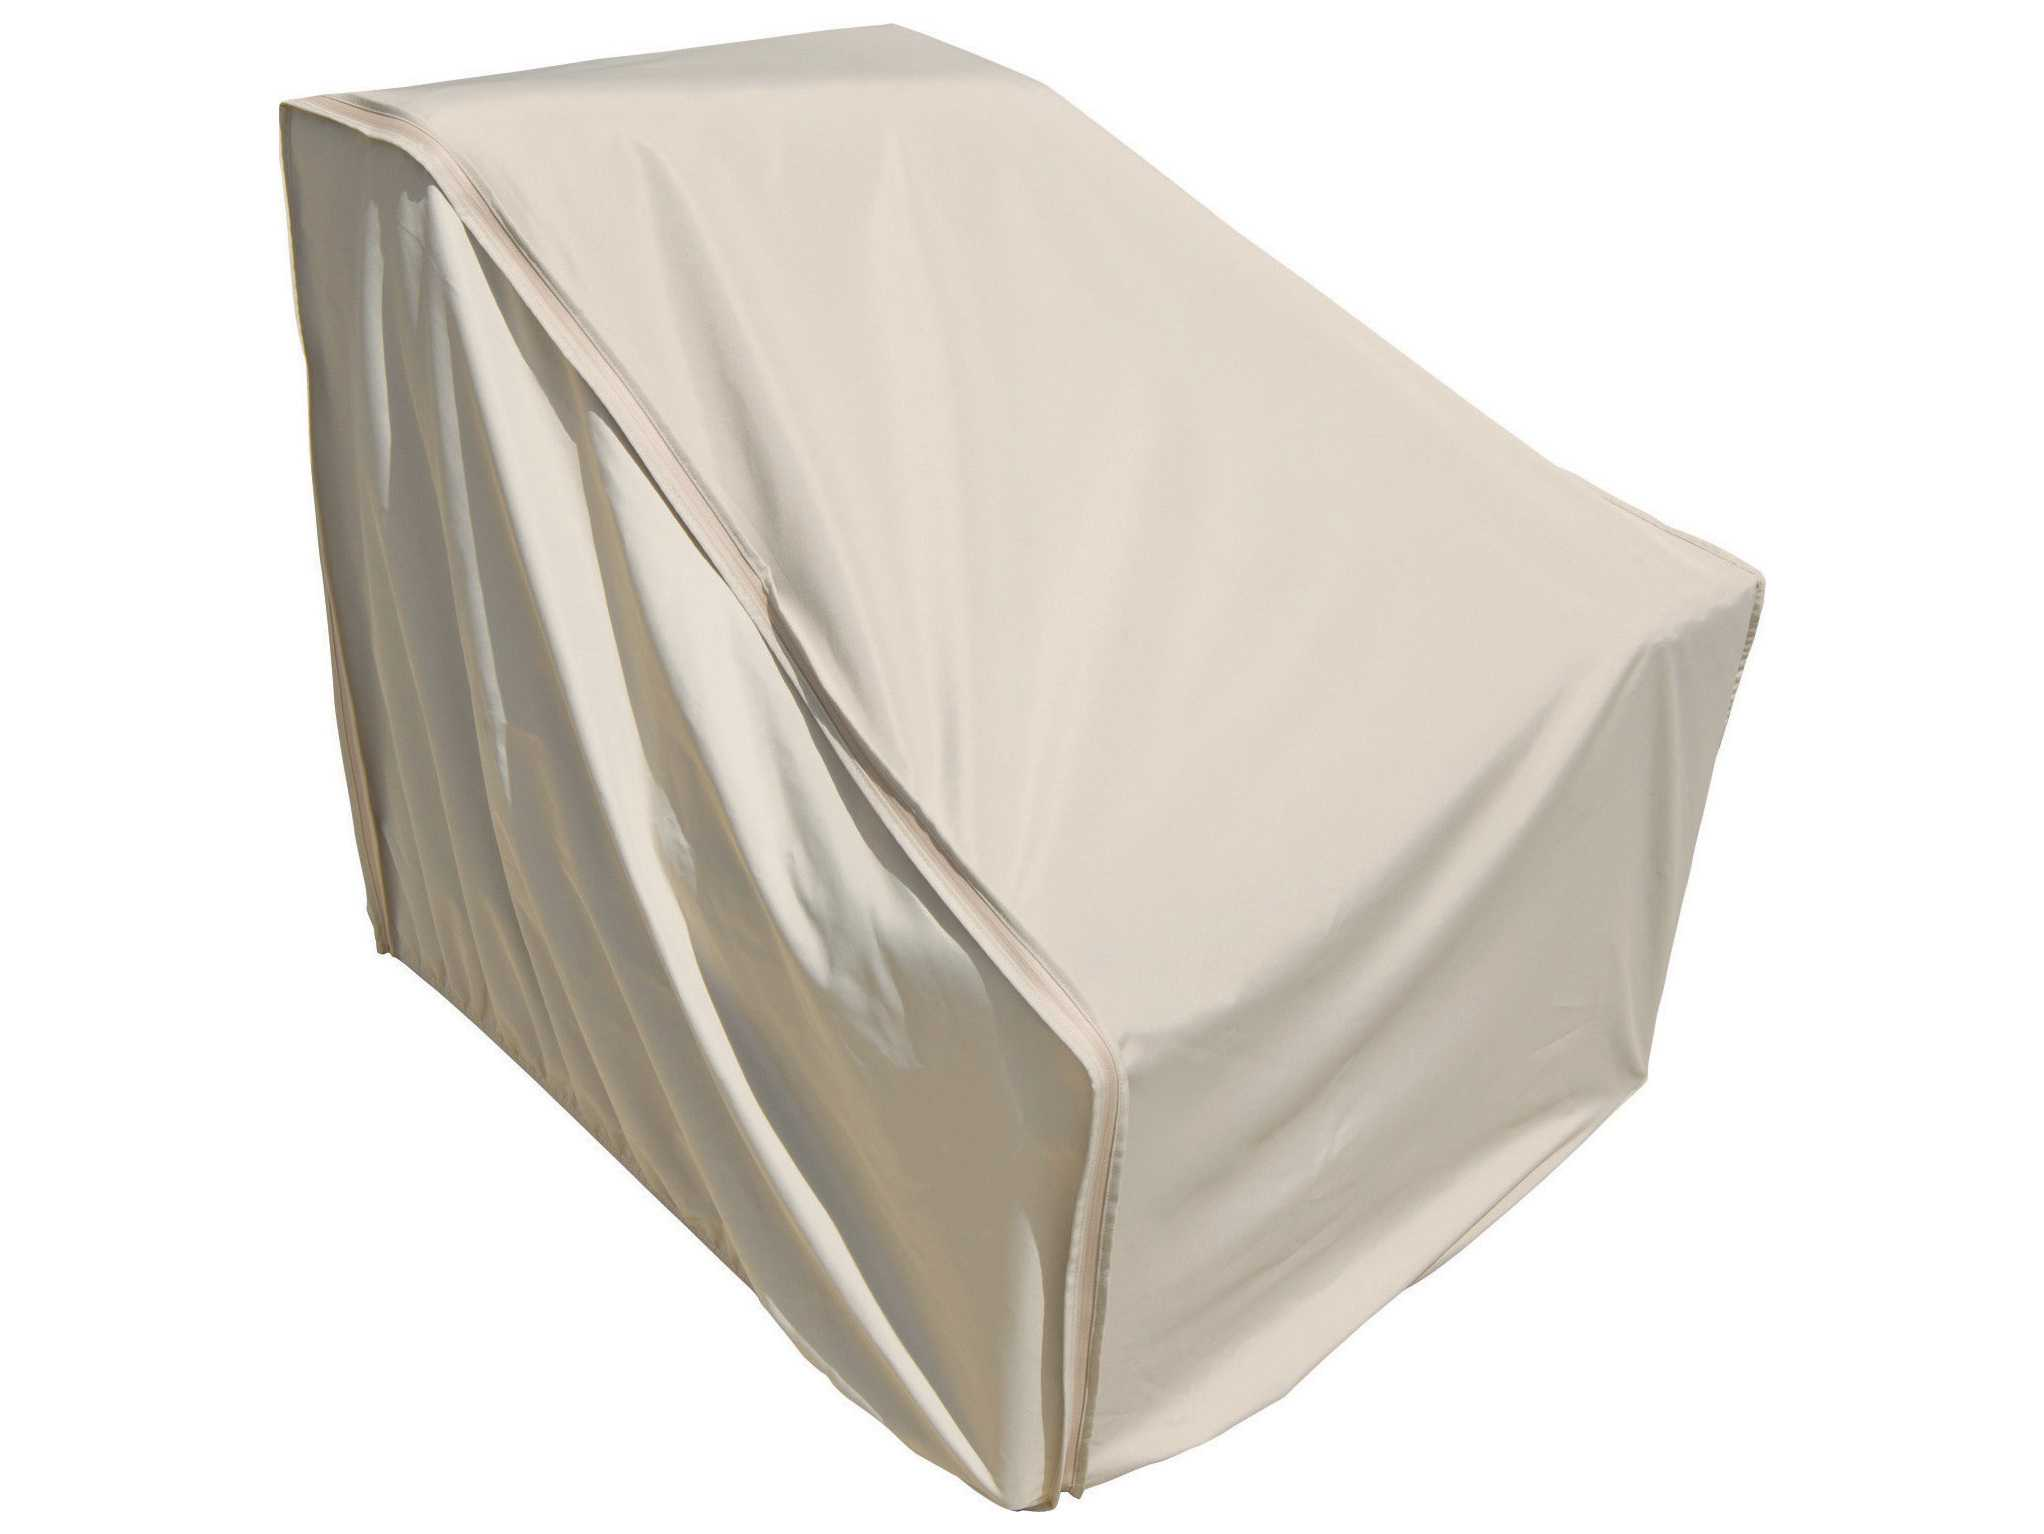 Treasure garden modular left end sectional cover cp303 for Treasure garden patio furniture covers